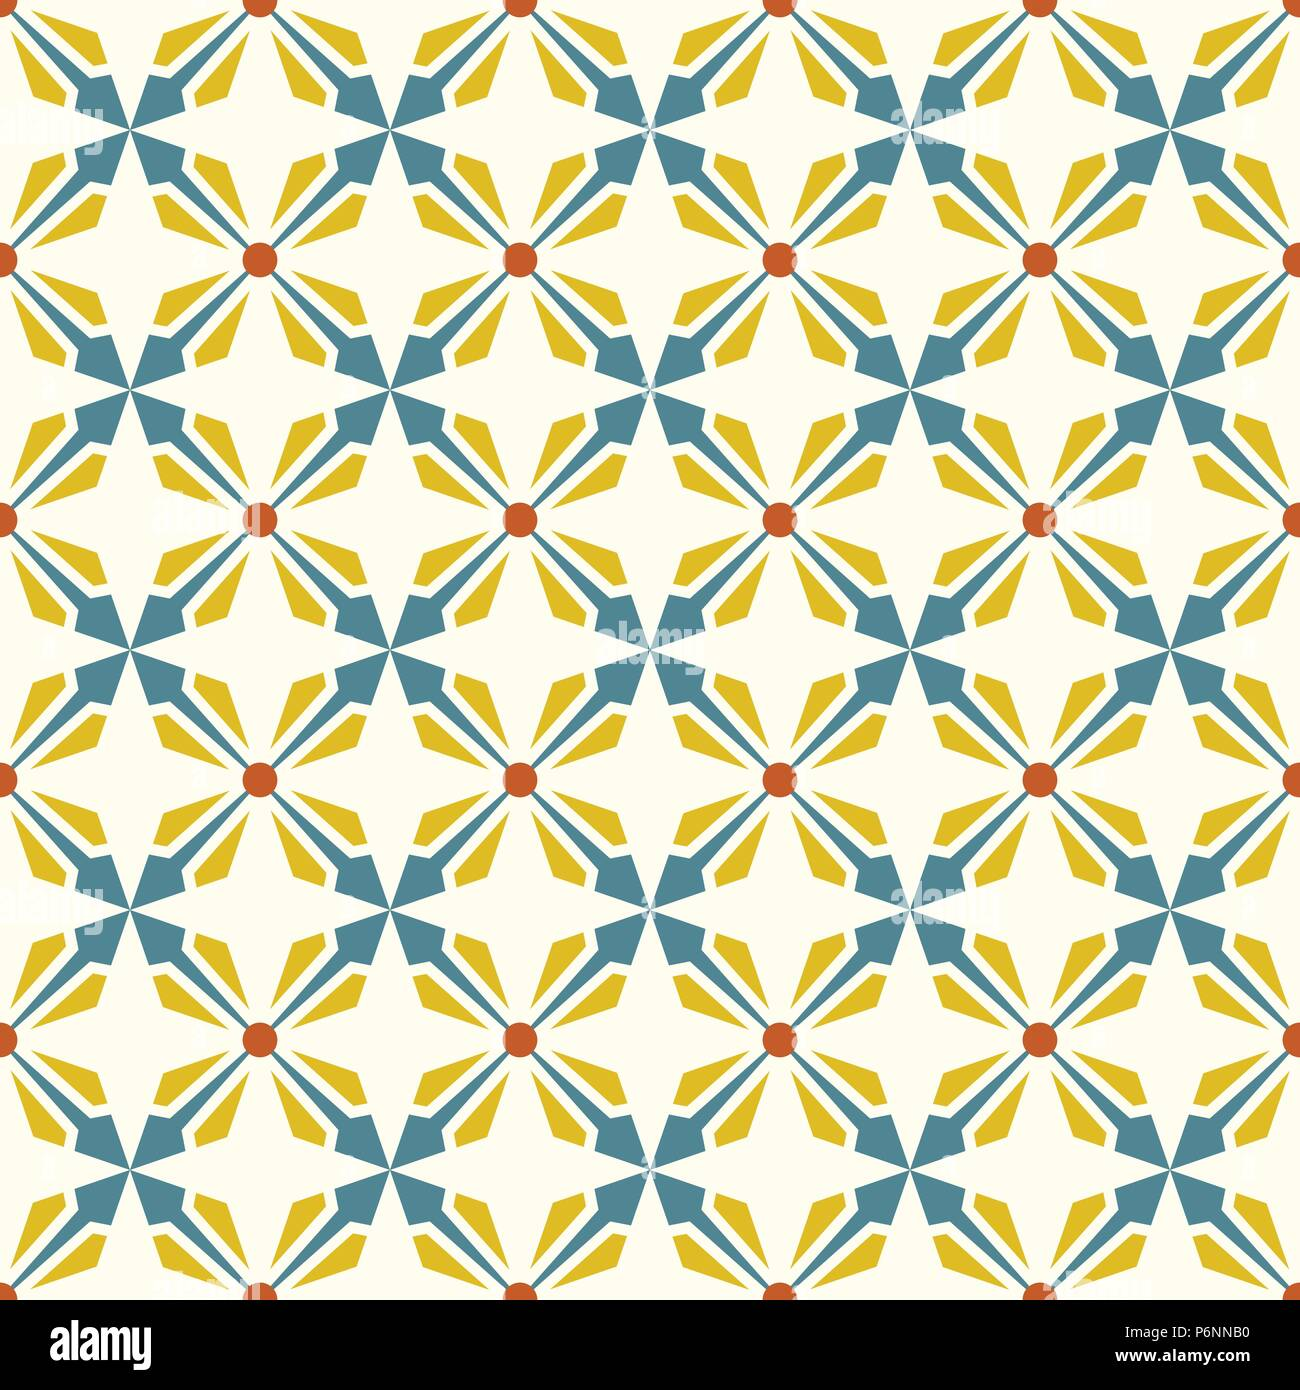 Blue and yellow abstract arrow and circle in rectangle shape seamless pattern. Modern pattern for graphic or abstract design. - Stock Vector